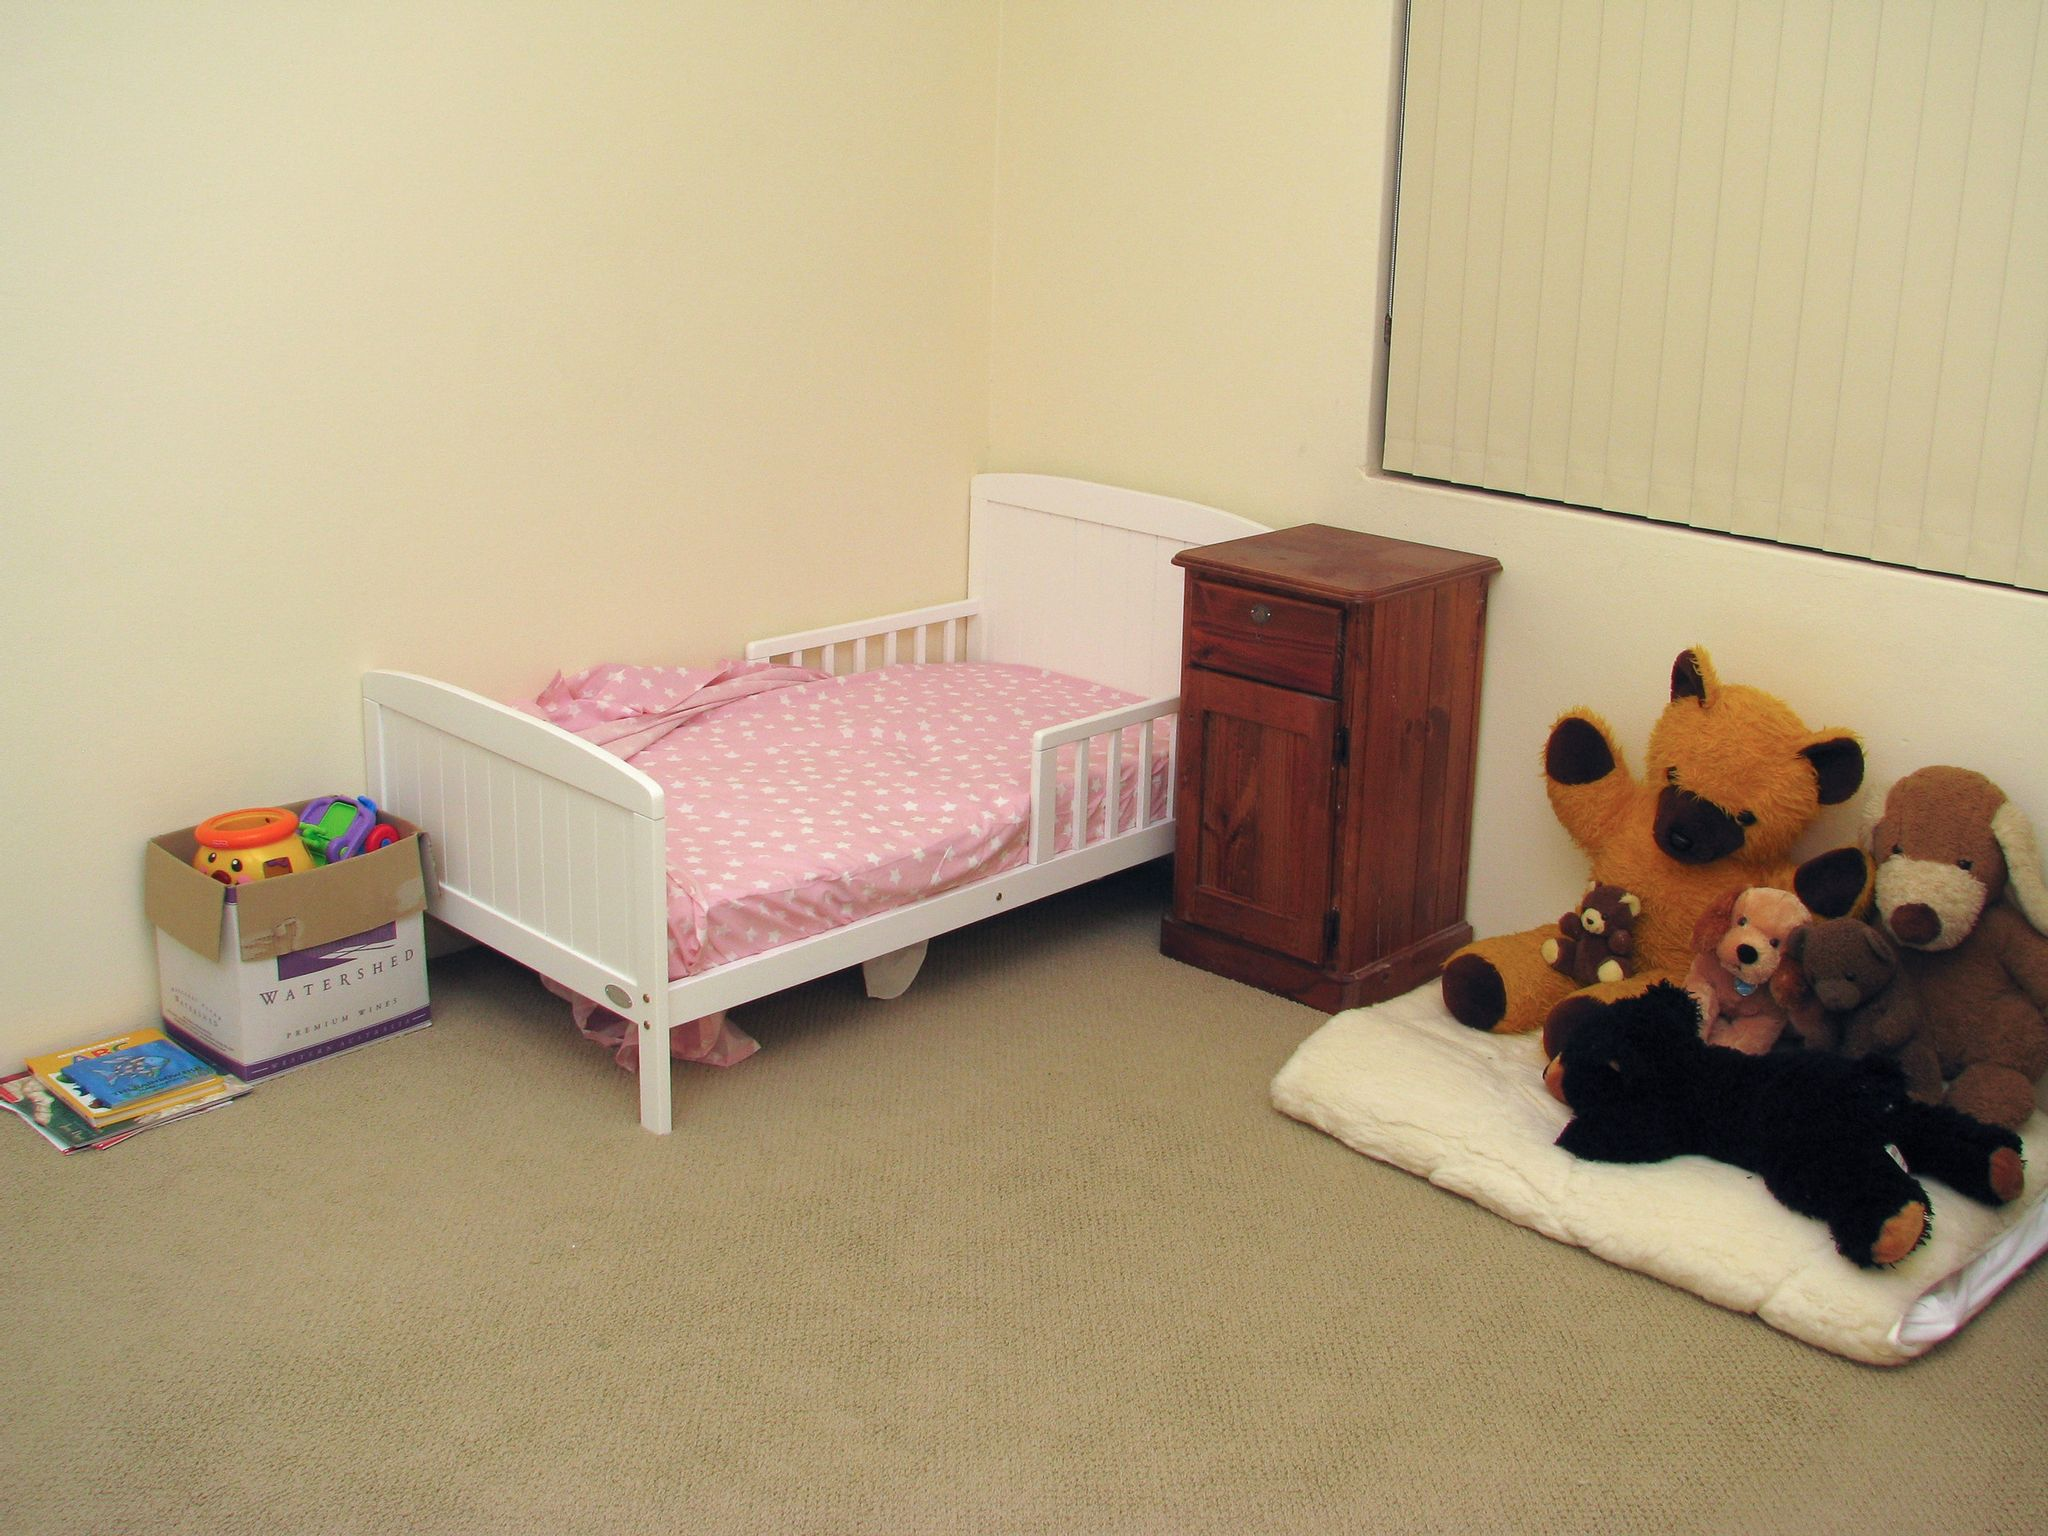 A photo of a small white wooden toddler bed in the corner of a room, with pink sheets on it. There's a brown wooden bedside table next to it that's significantly taller than the top of the bed, various soft toys to the right of the bedside table, and some plastic toys in a box at the end of the bed.